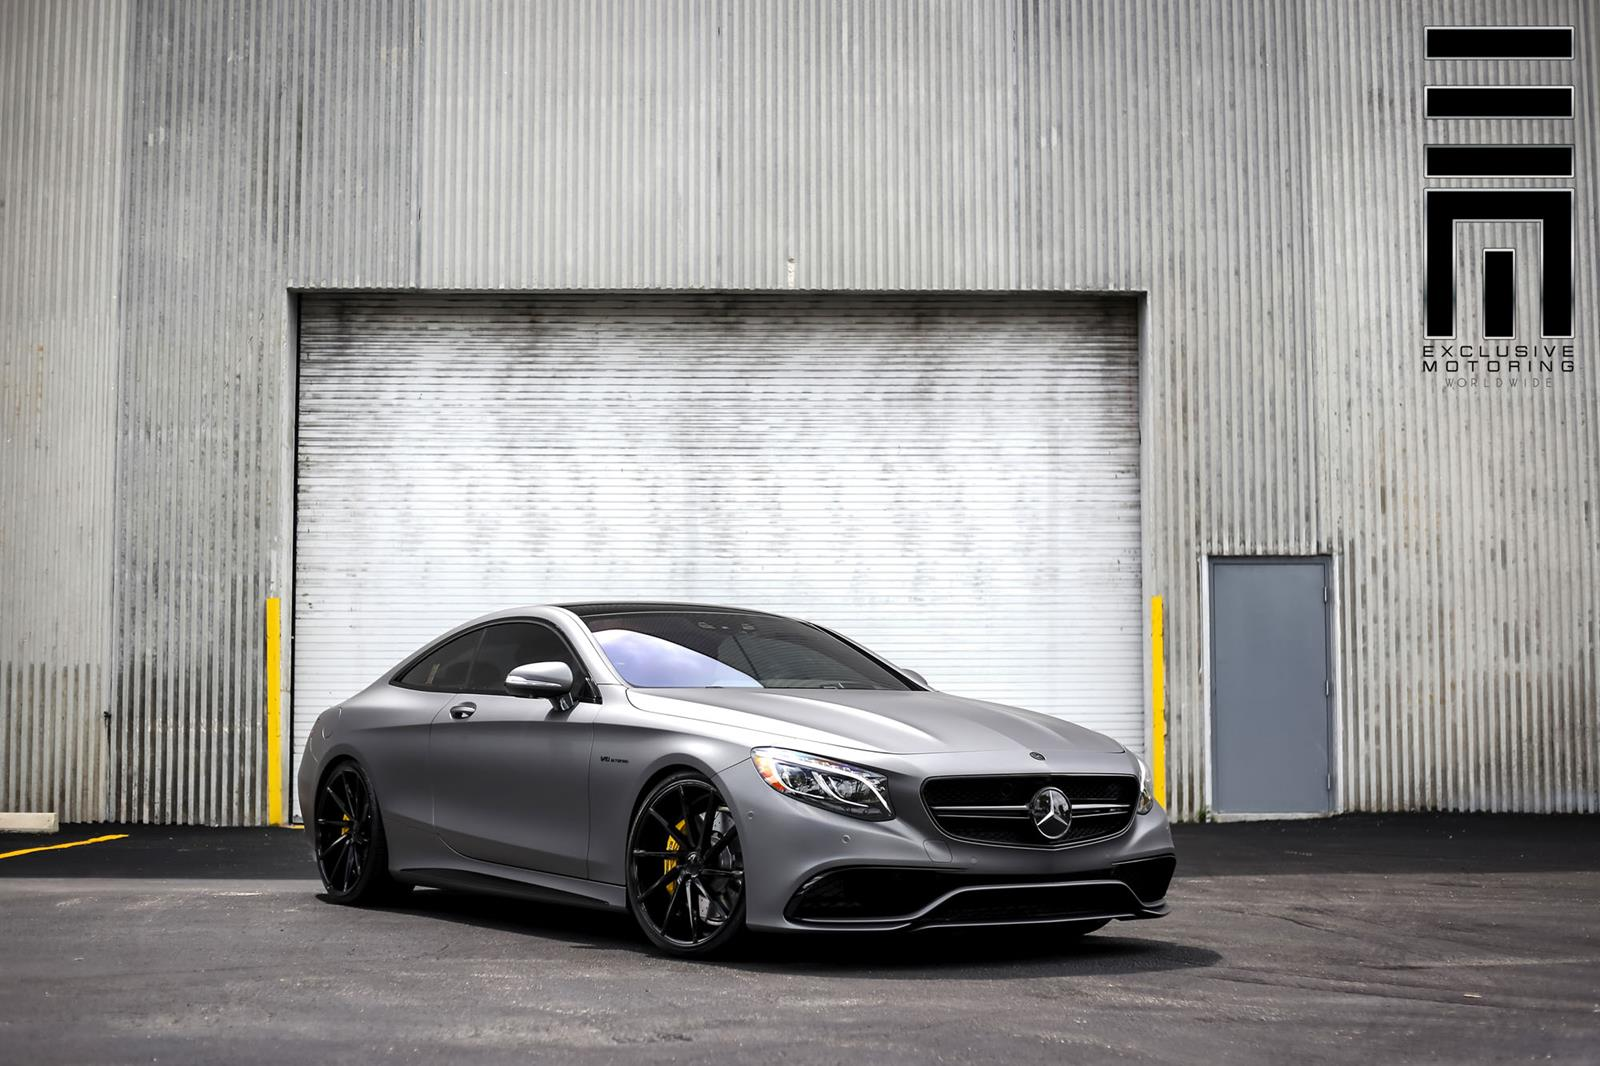 985 HP Mansory Mercedes S63 AMG Coupe Diamond Edition Sounds Like